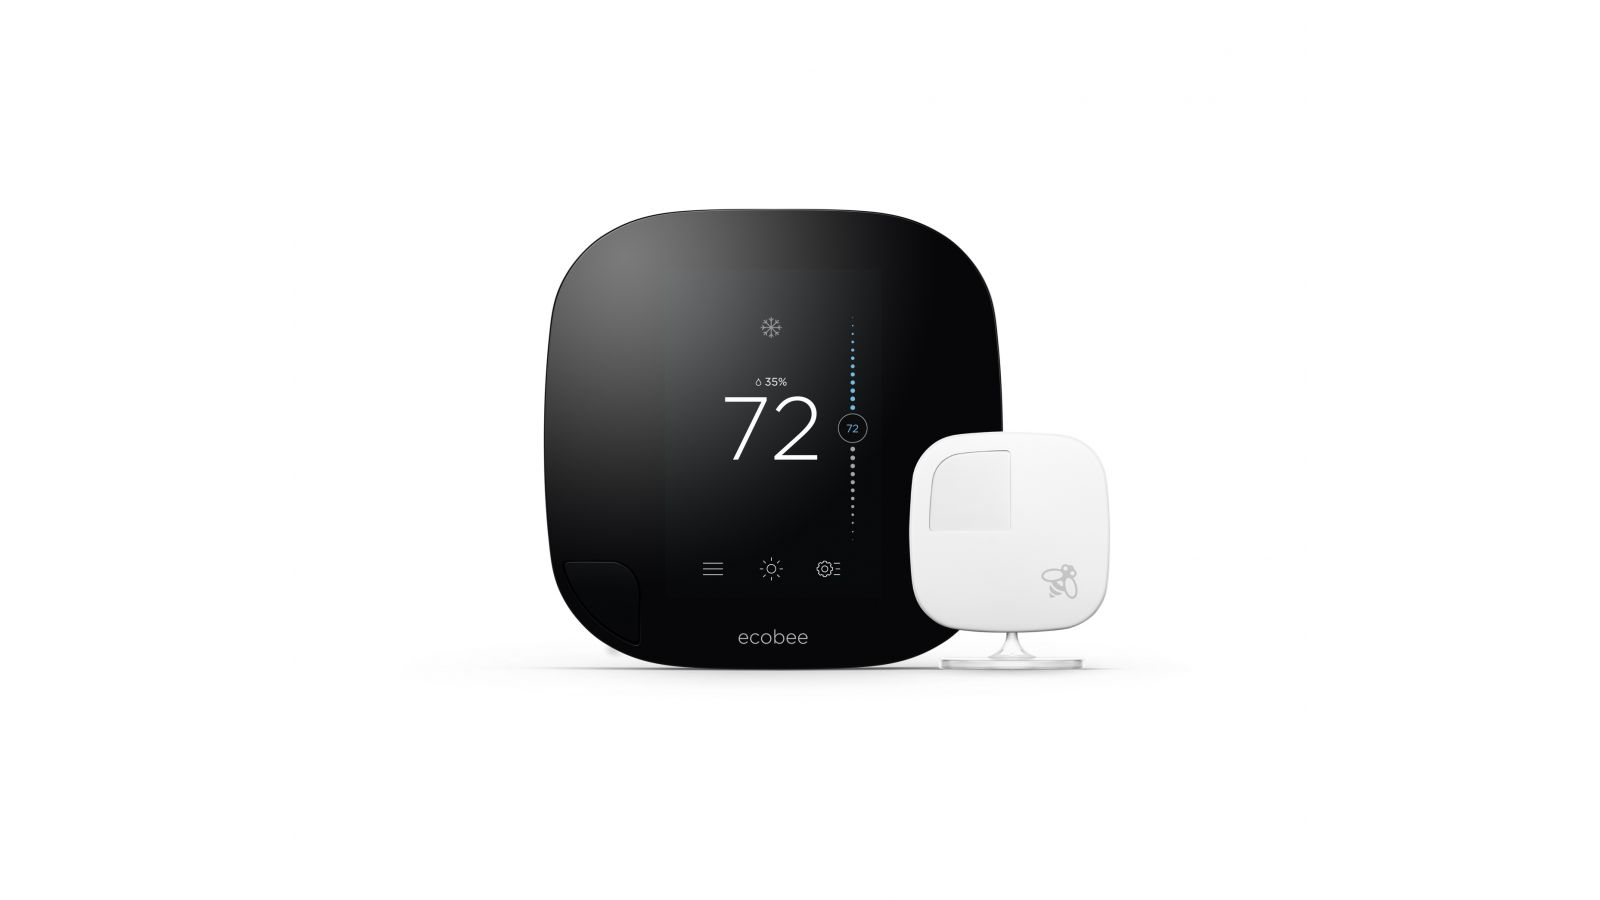 ecobee3 Smart Thermostat and Remote Sensors